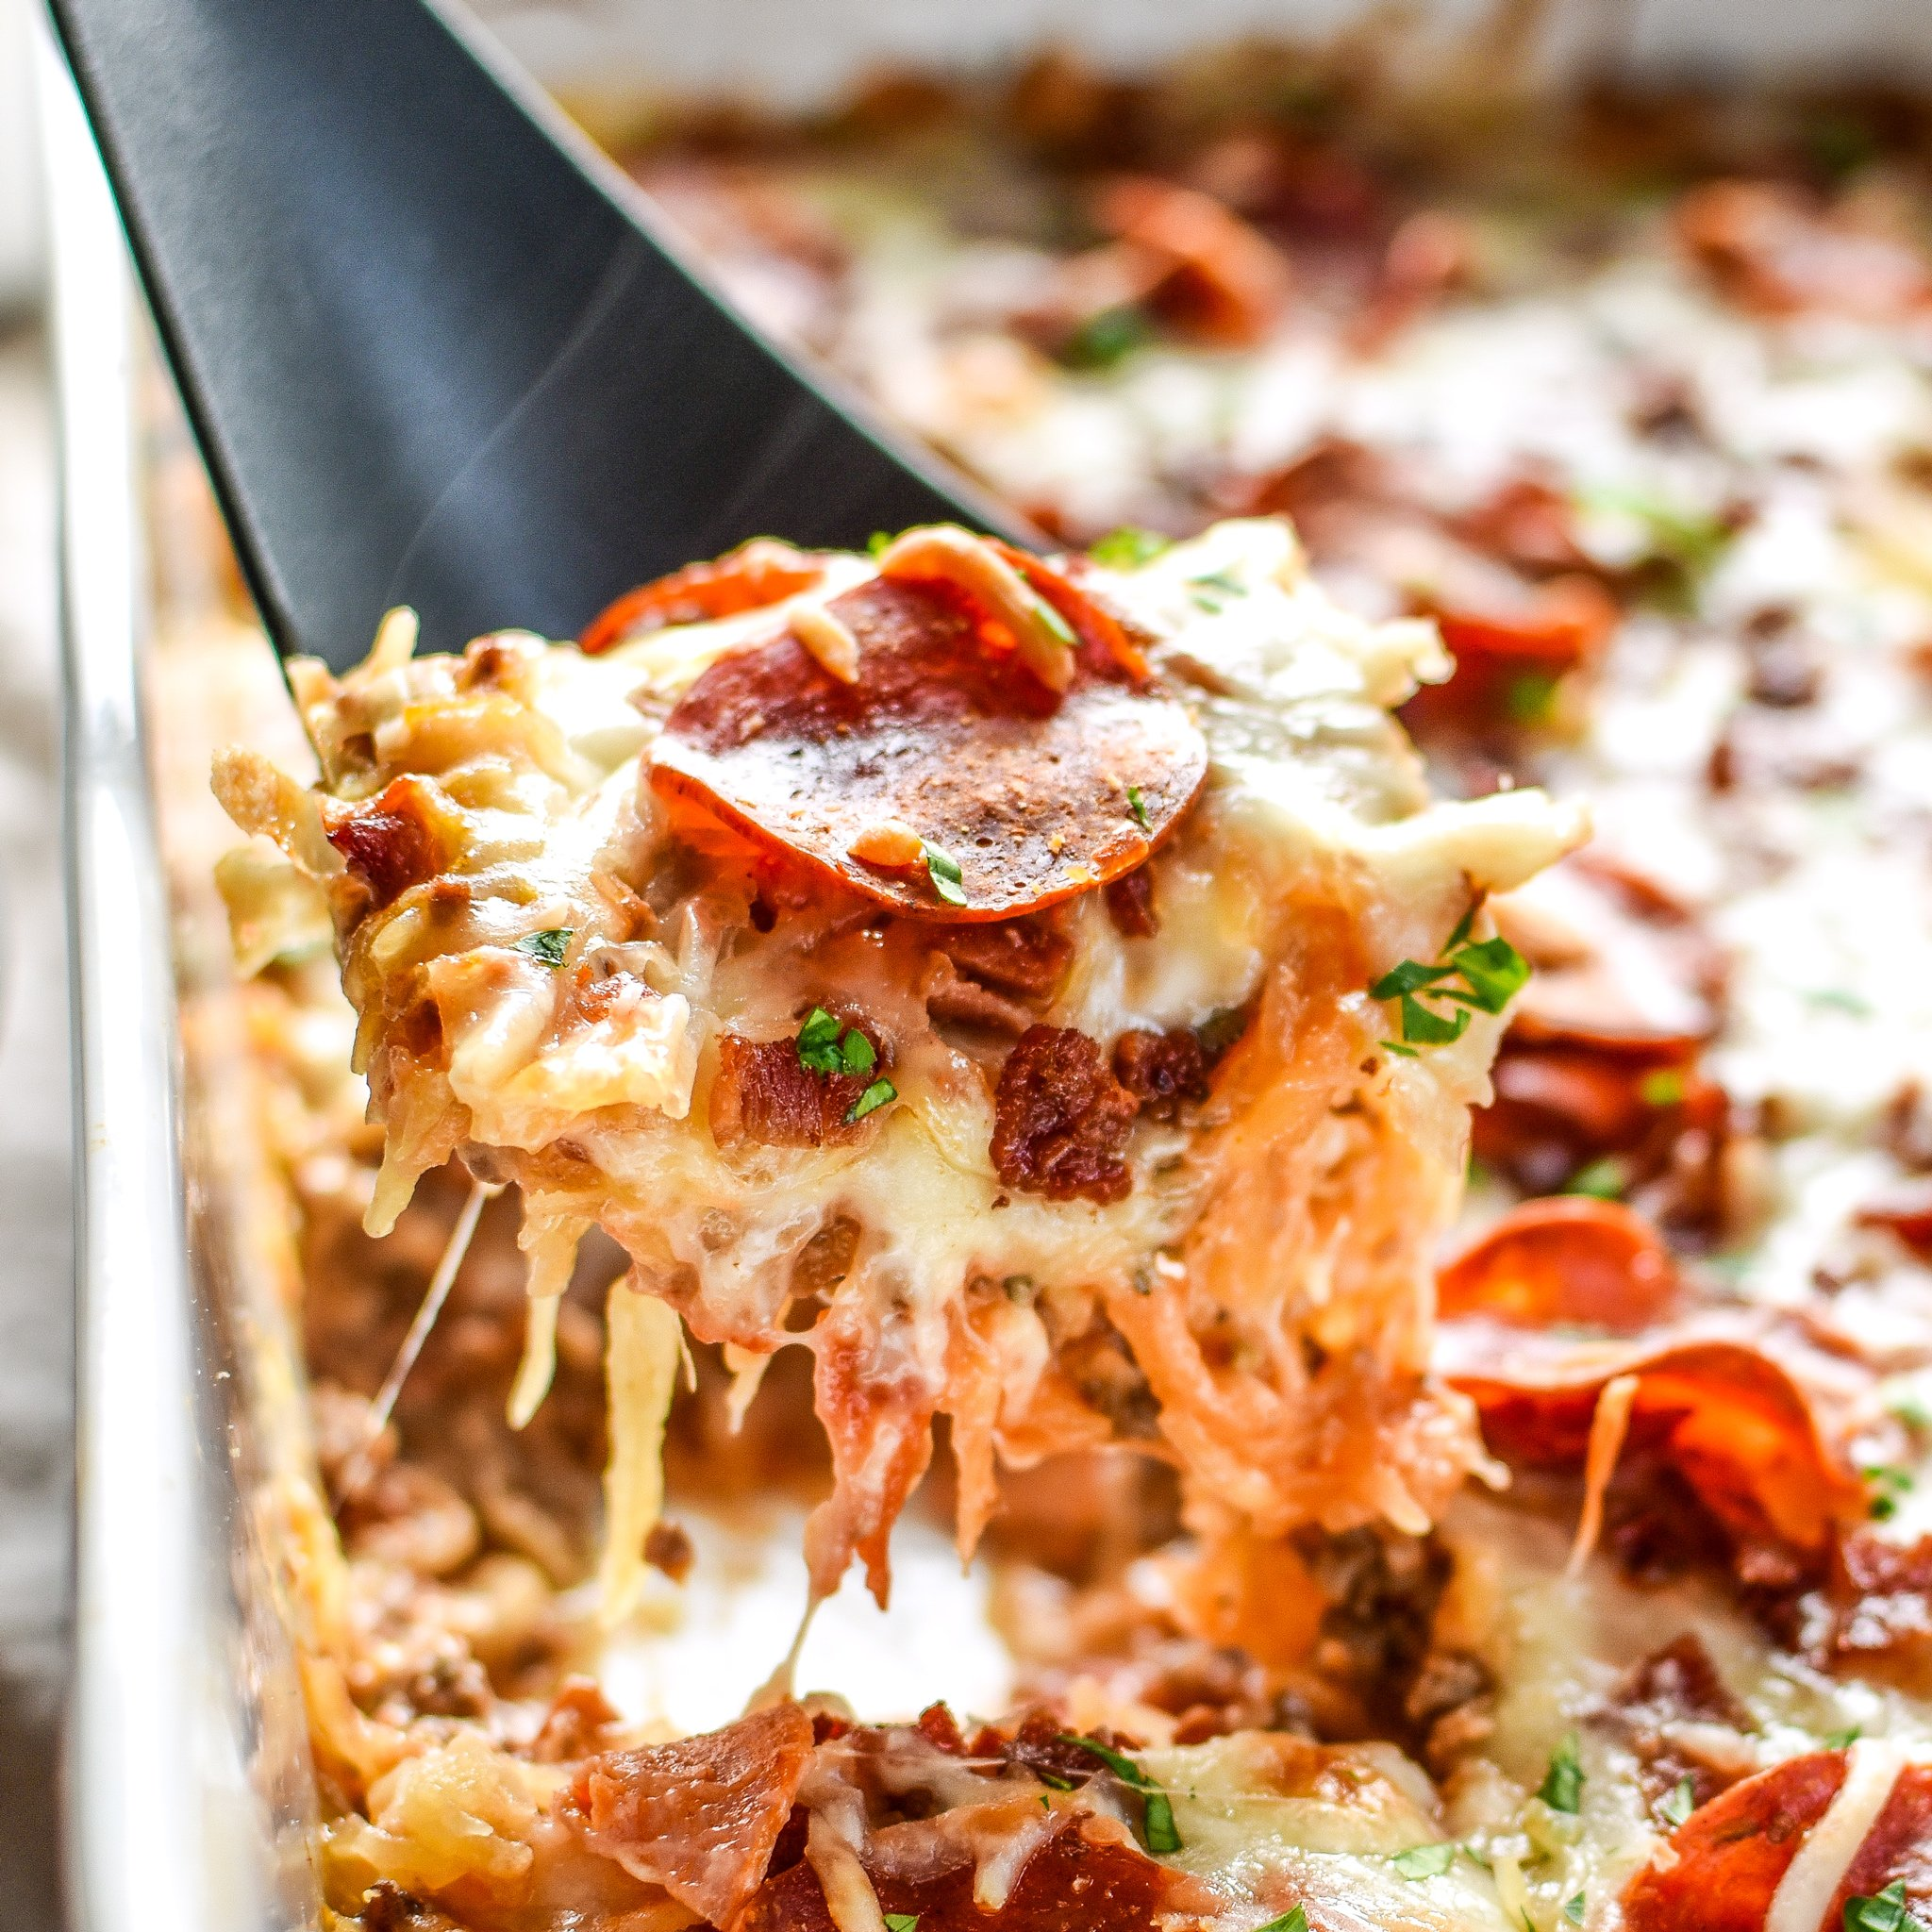 The best shot of Meat Lover's Spaghetti Squash Pizza Casserole - It's pizza, but morphed into a not-that-bad-for-you spaghetti squash casserole with meat lover's toppings! - ProjectMealPlan.com